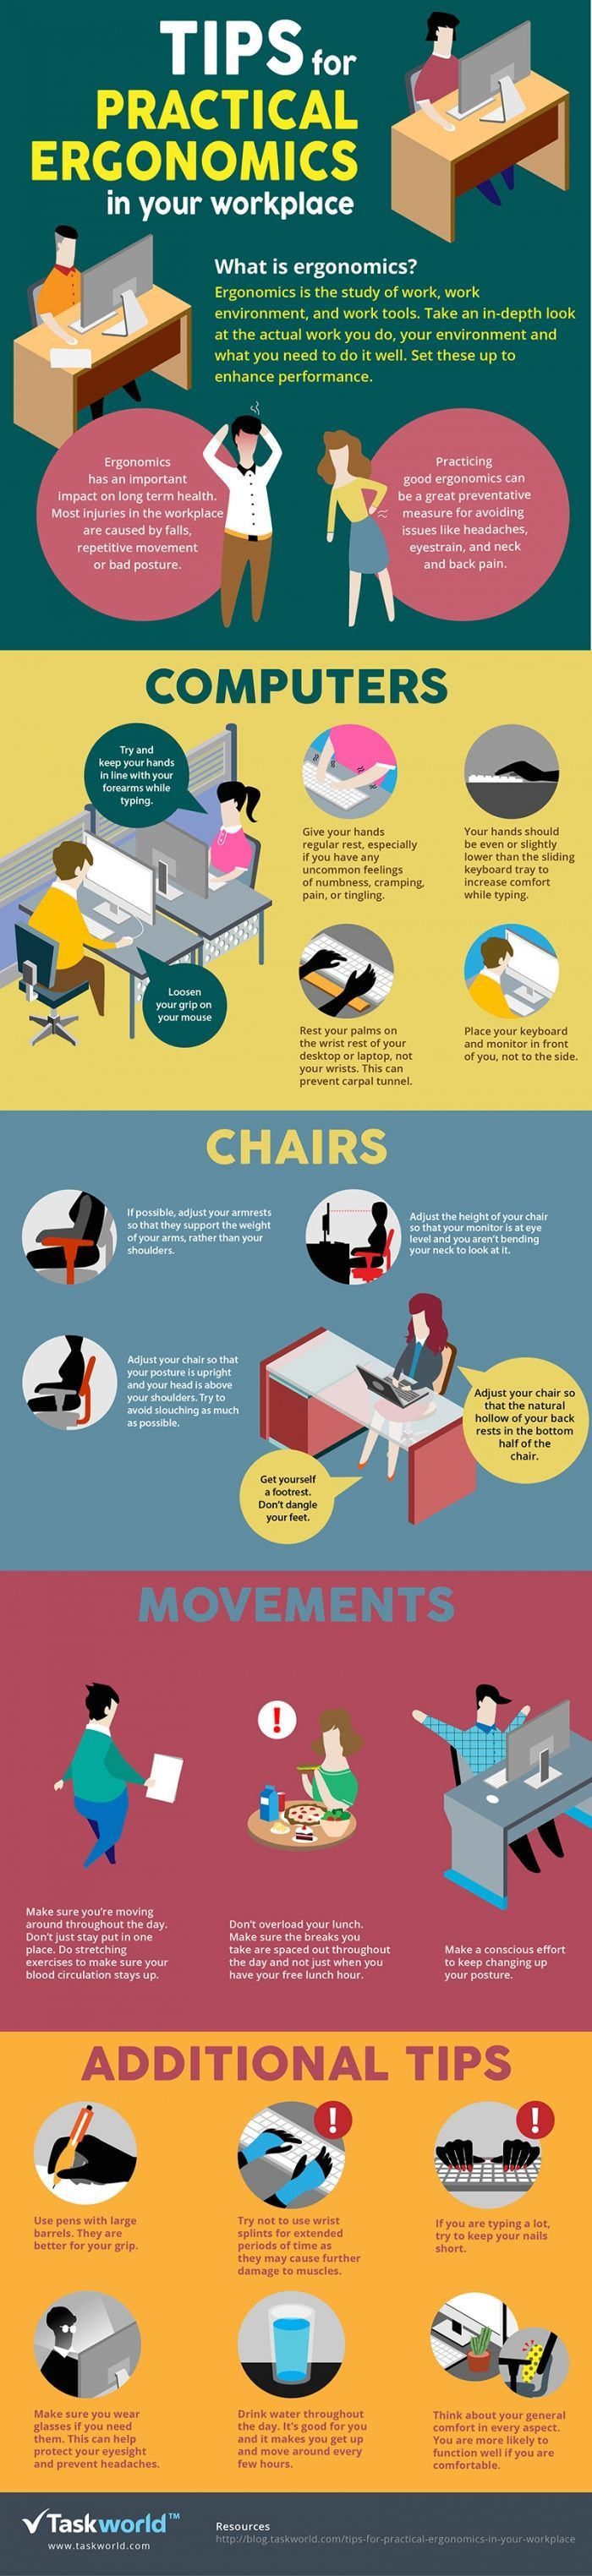 best ergonomics images on pinterest offices office safety and